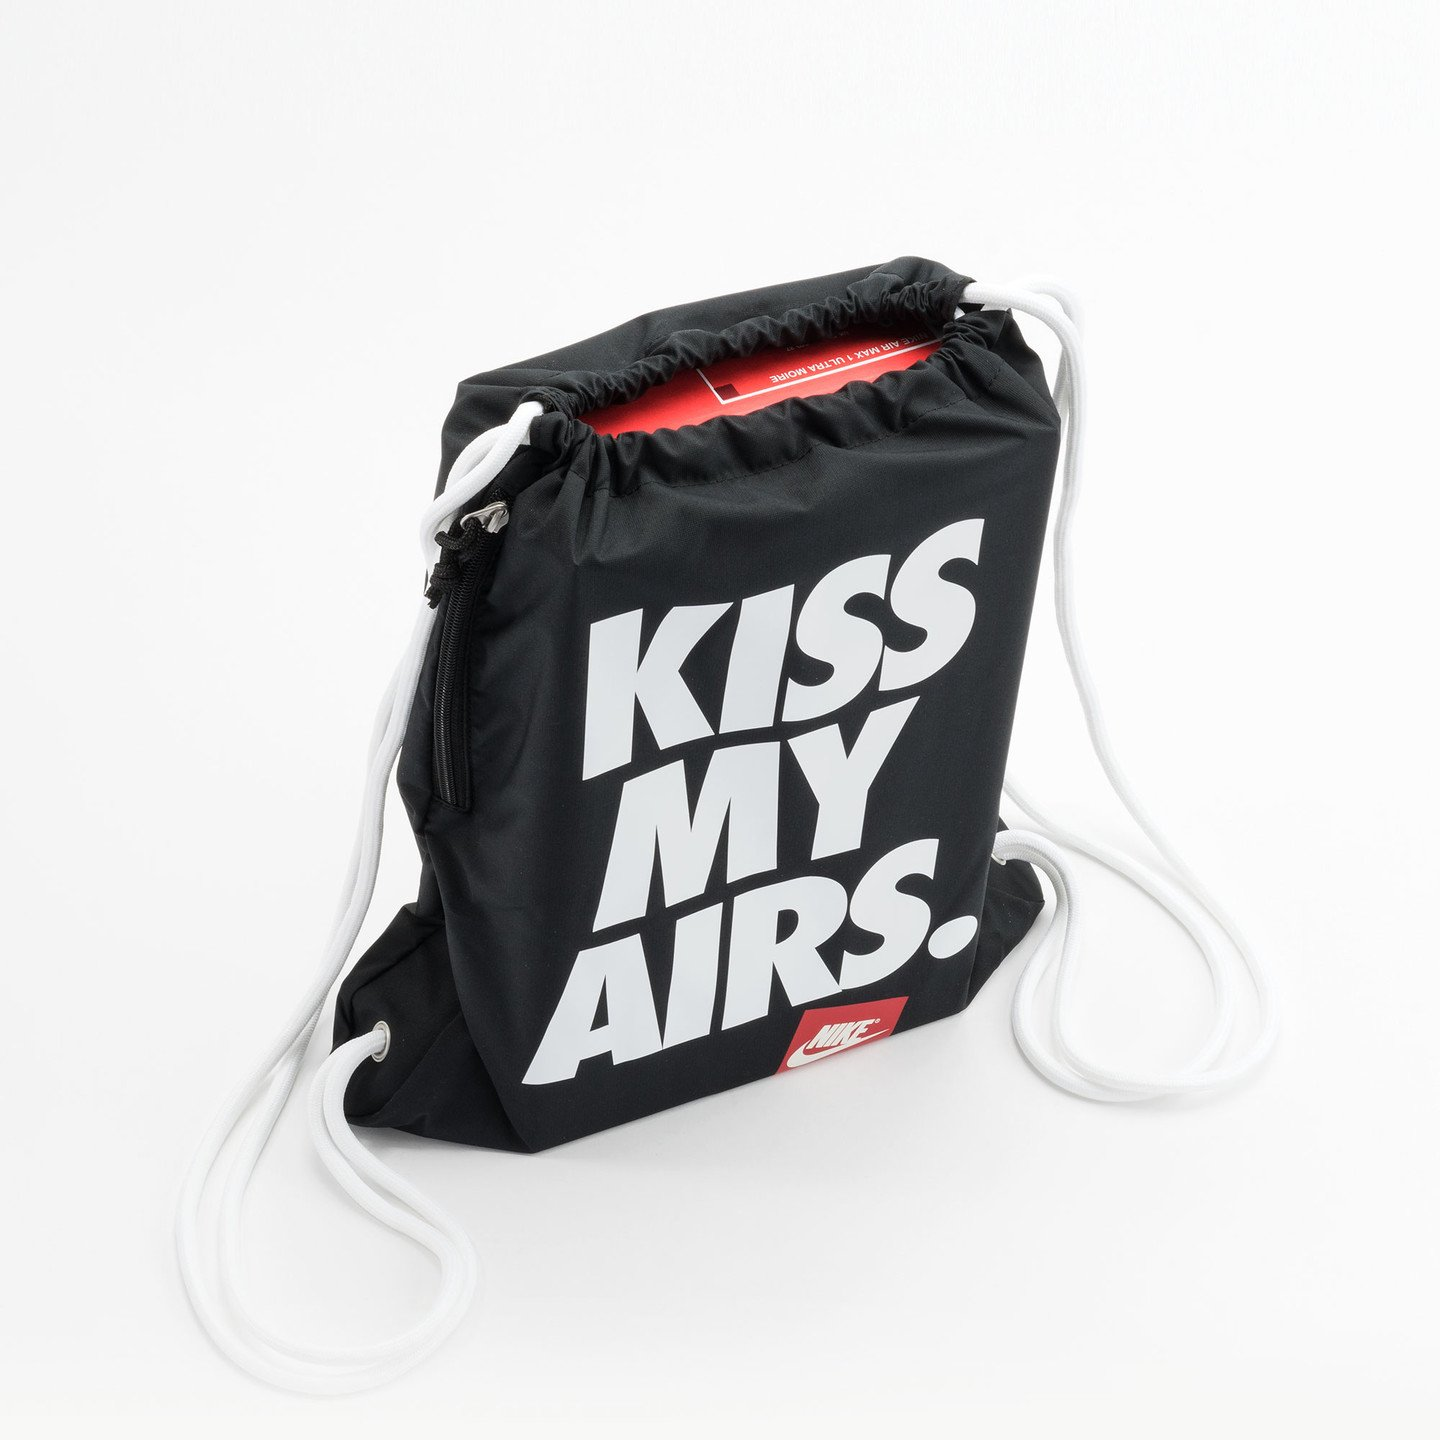 Nike Kiss My Airs Gymbag Black / White / Red BZ9746-011